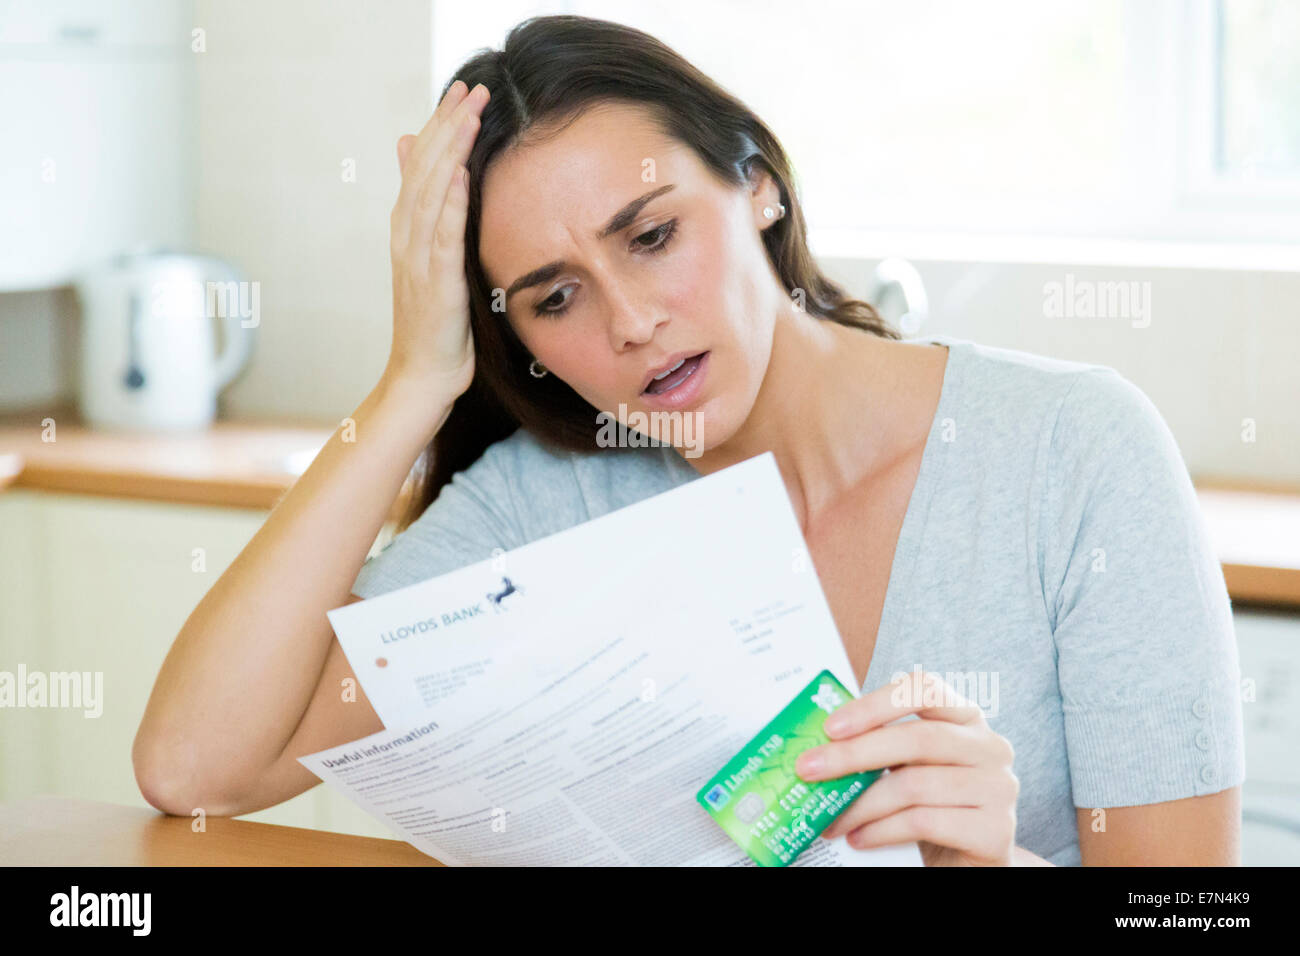 woman worried about bank / credit card statement - Stock Image